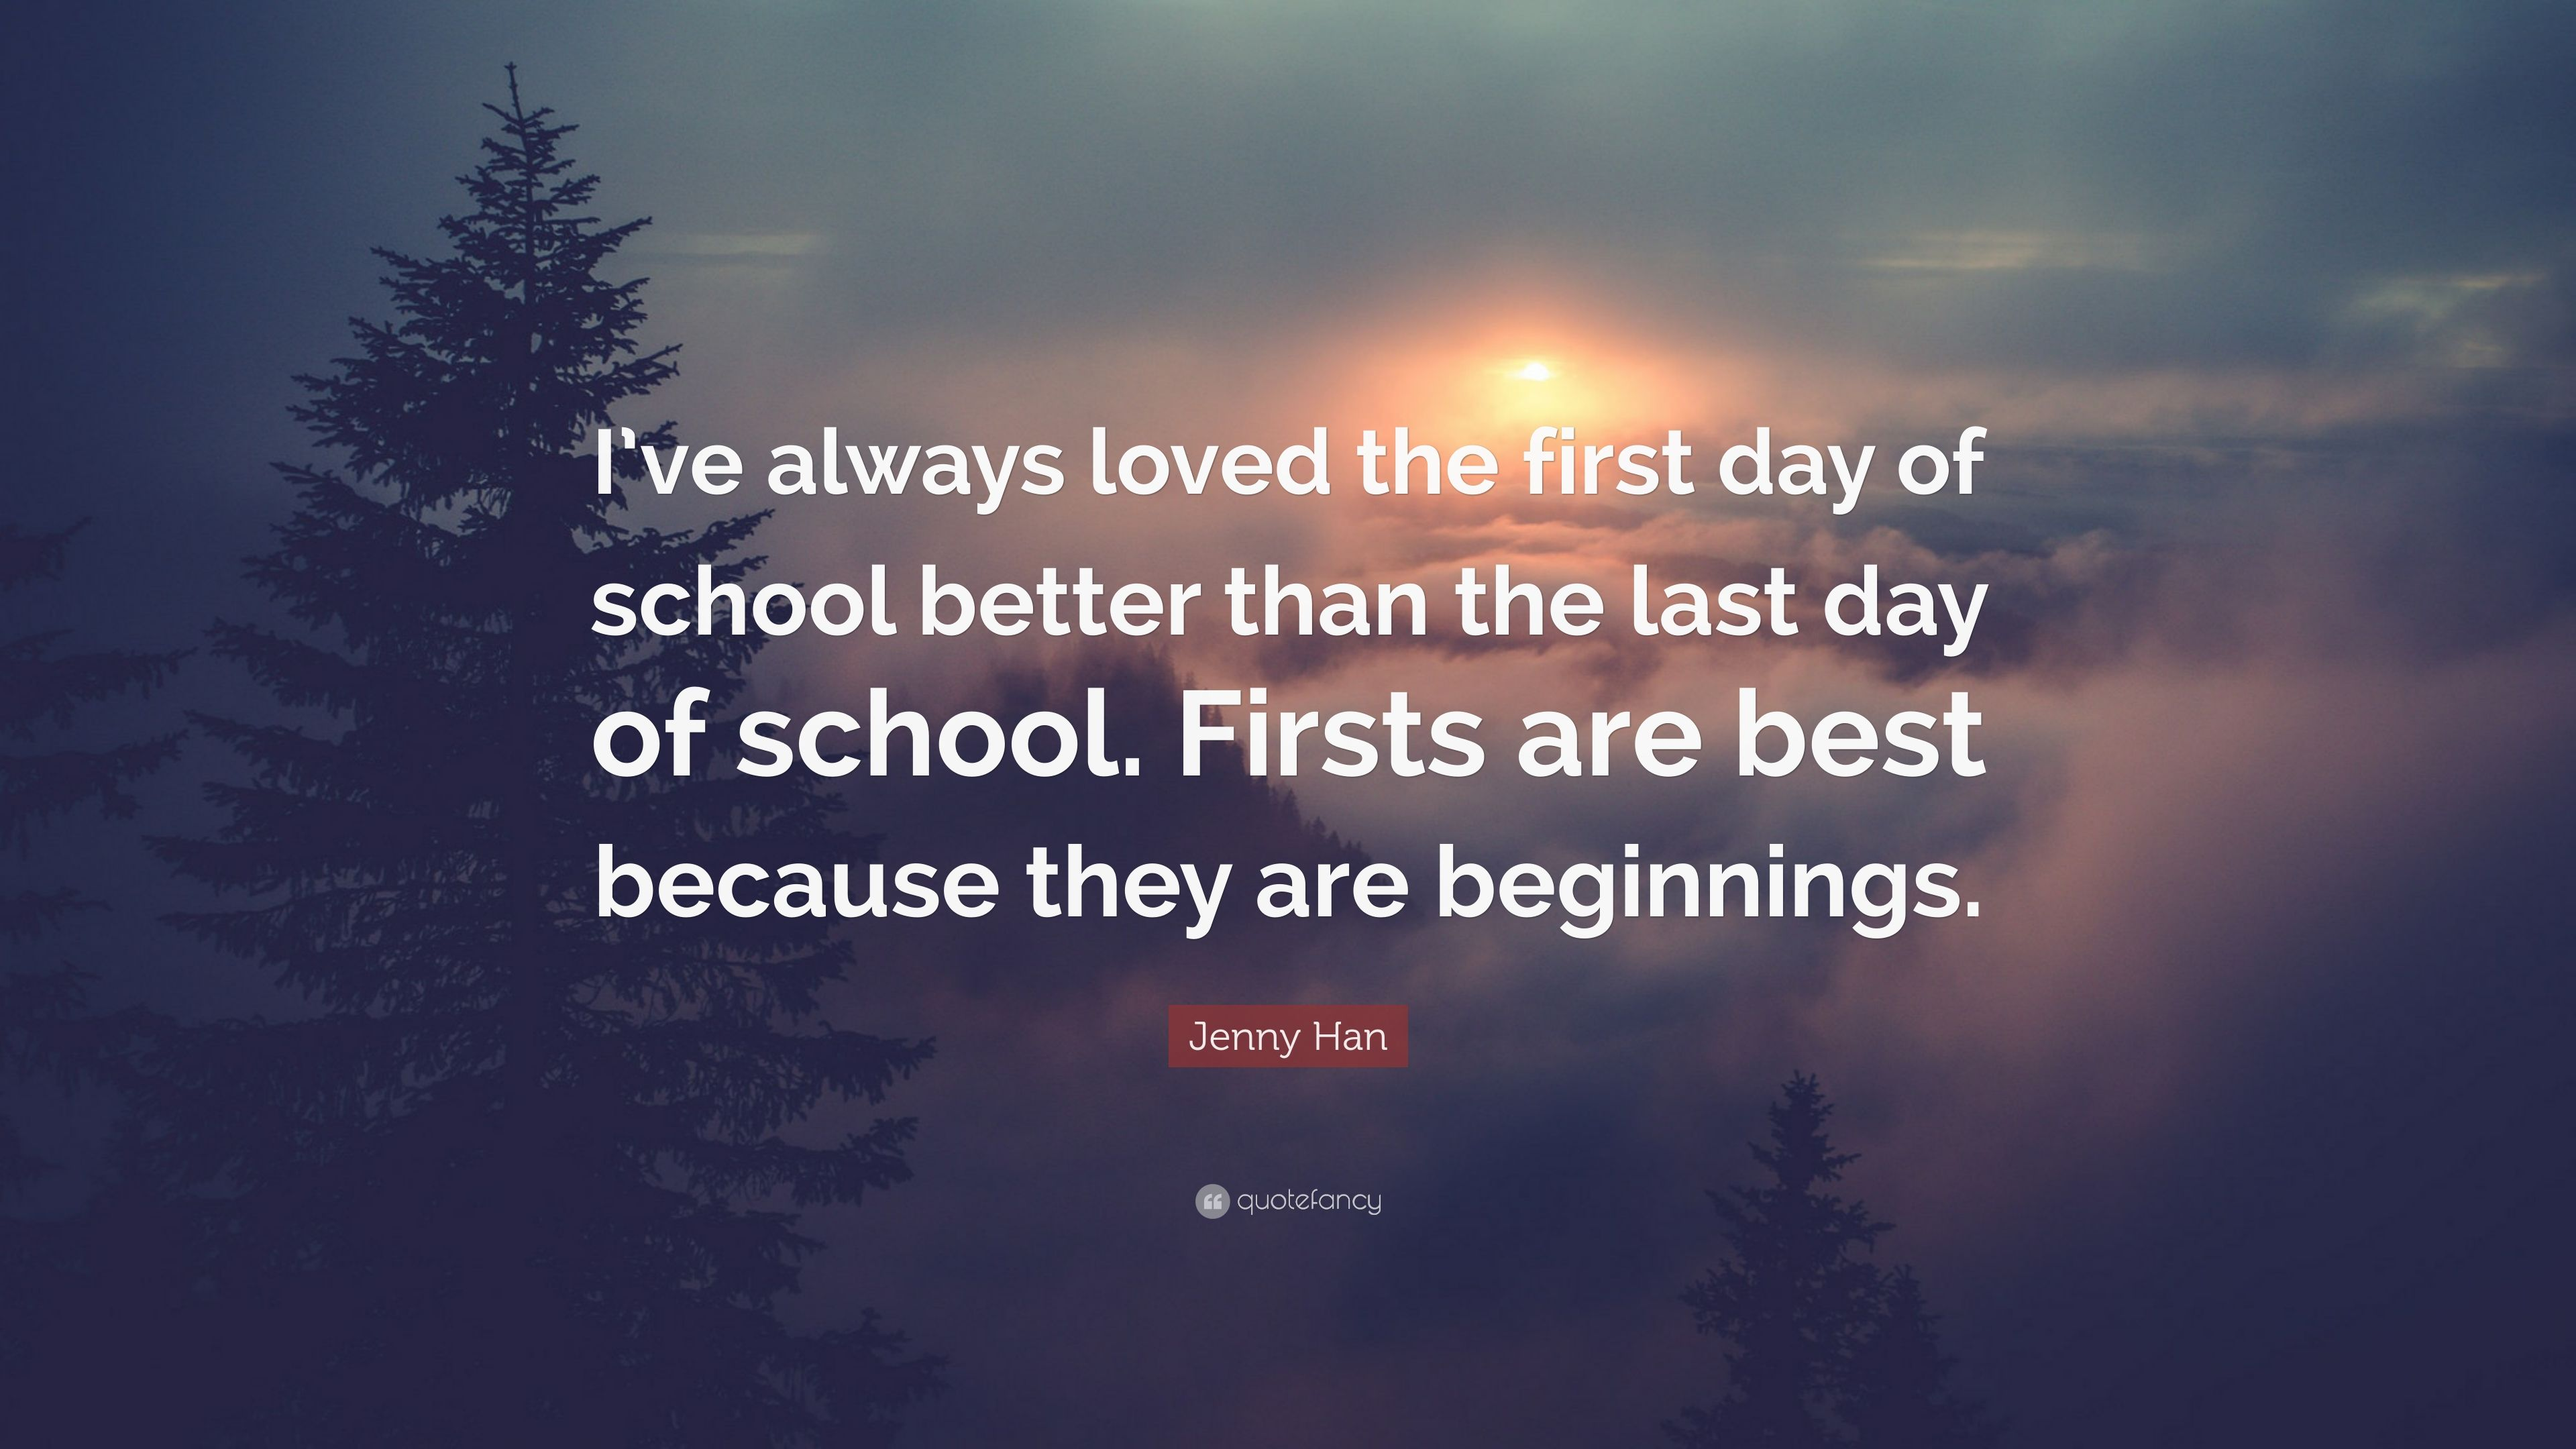 First Day Of School Quotes Archidev